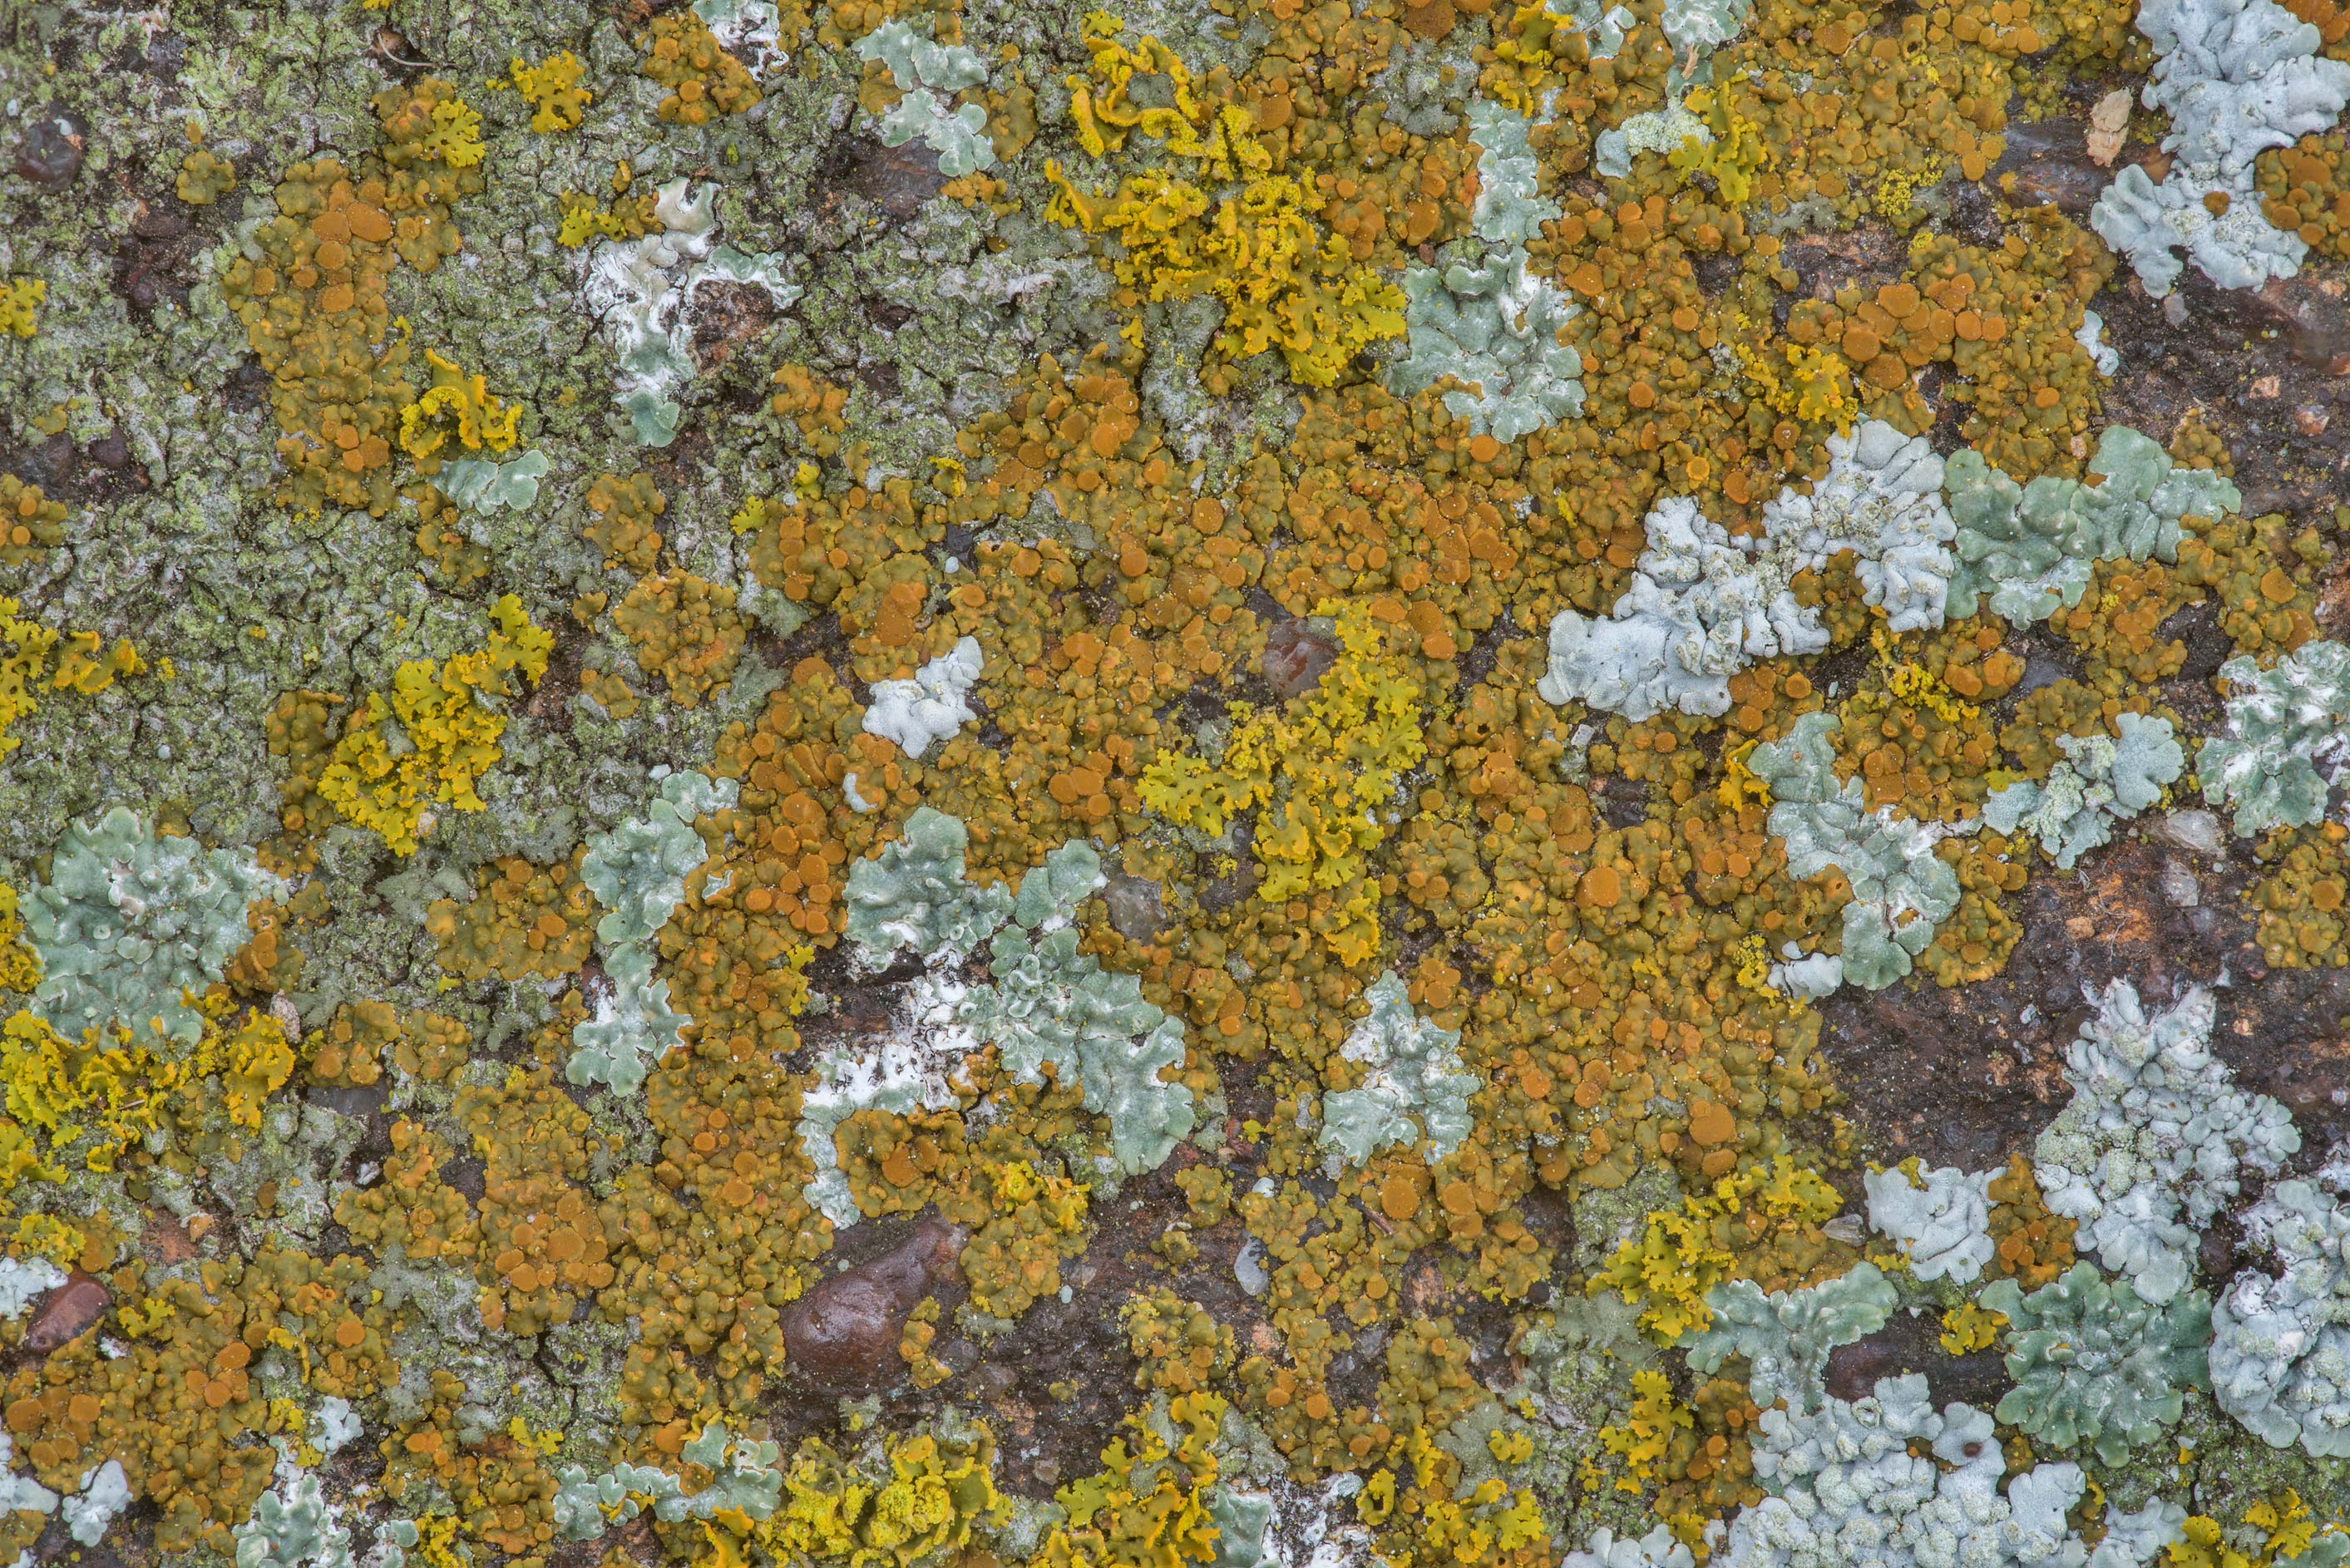 Multicolored lichens on sandstone of Lost Pines...in Bastrop State Park. Bastrop, Texas